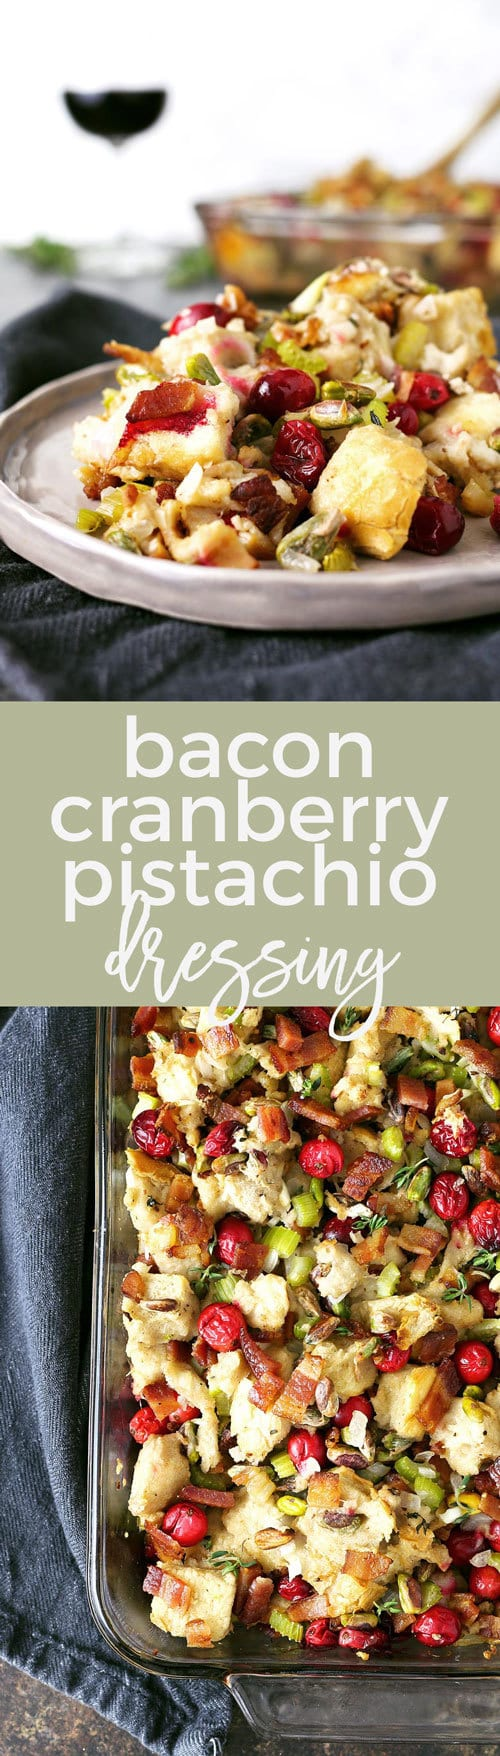 Homemade bacon cranberry pistachio dressing pin